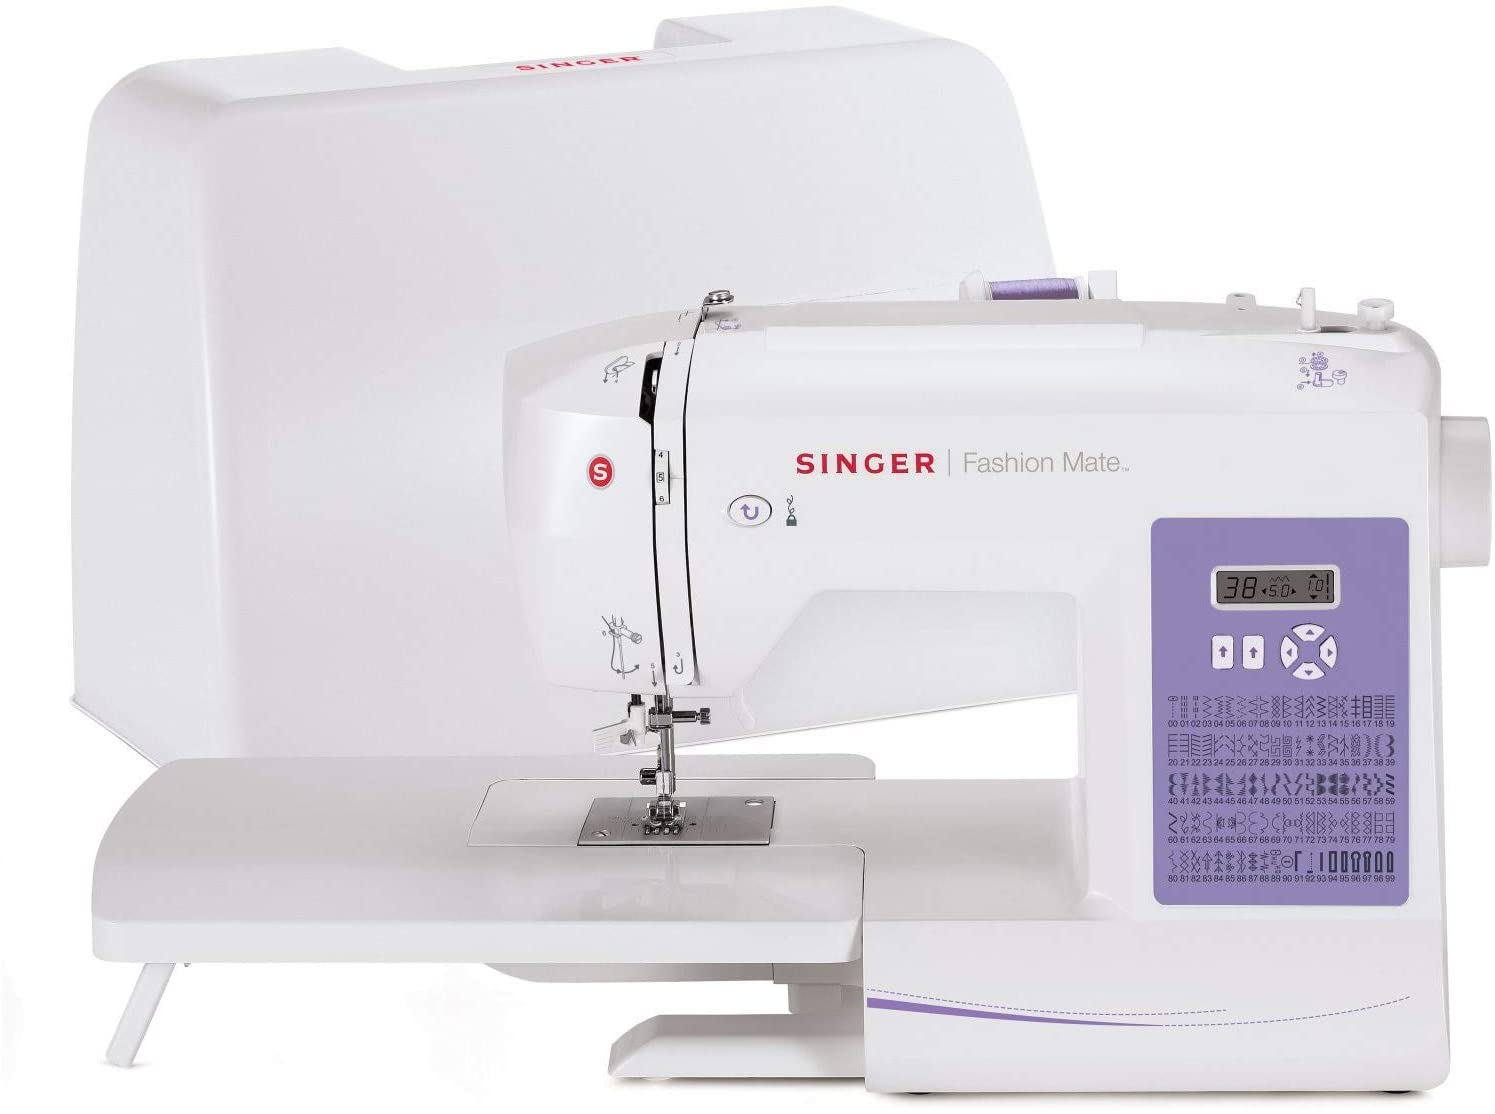 Singer Sewing Machine 5560